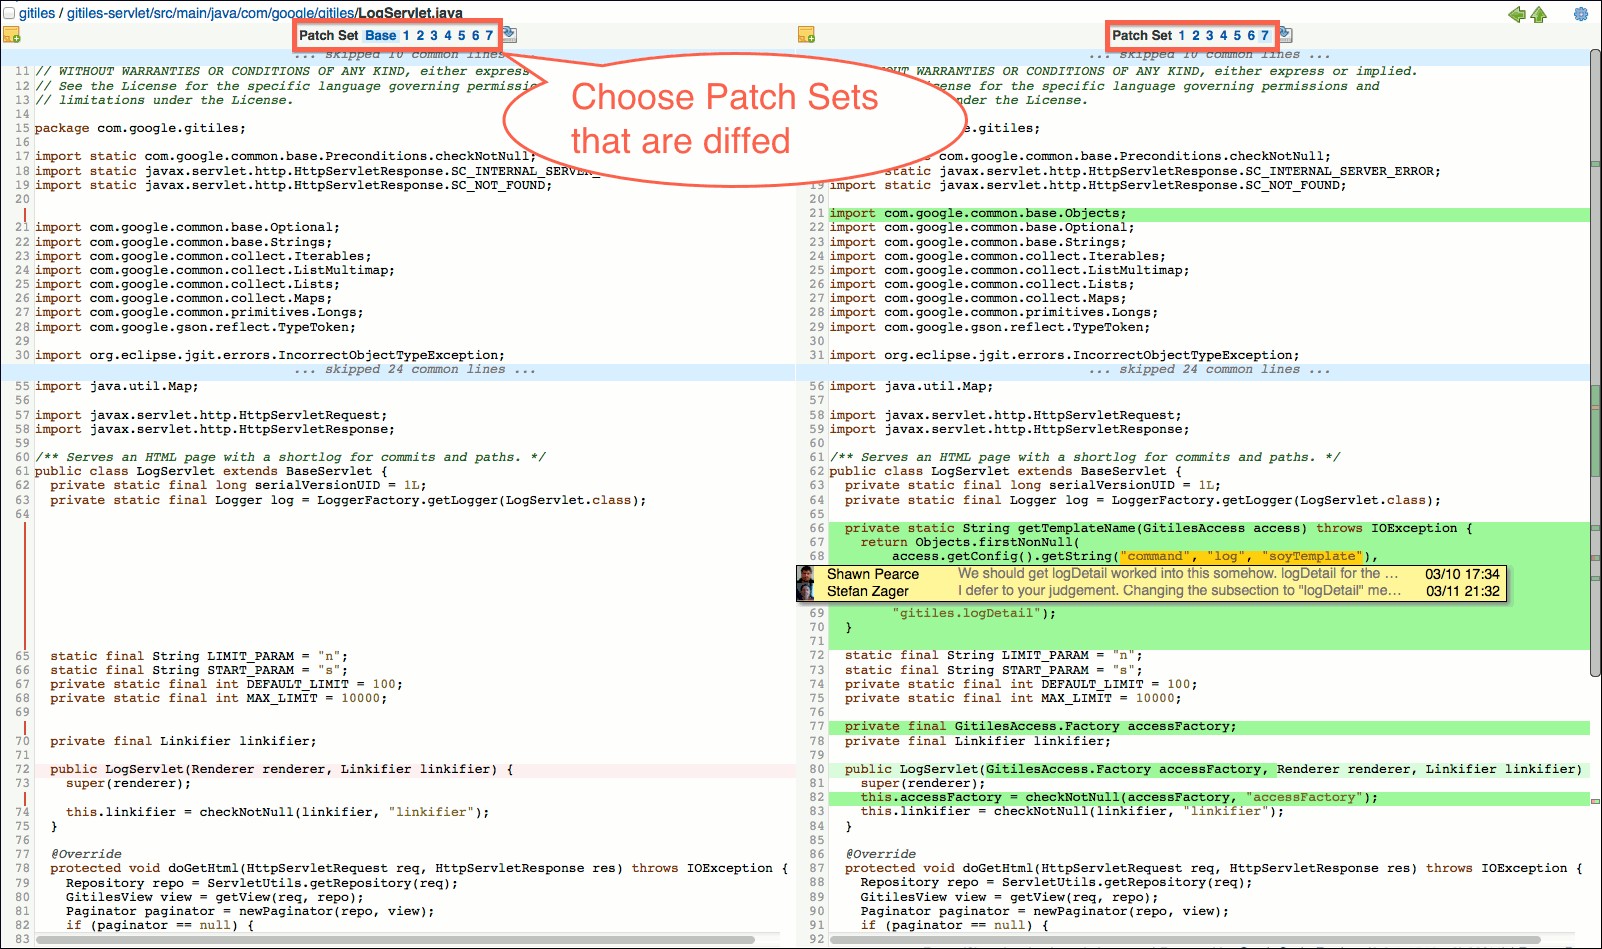 images/user-review-ui-side-by-side-diff-screen-patch-sets.png